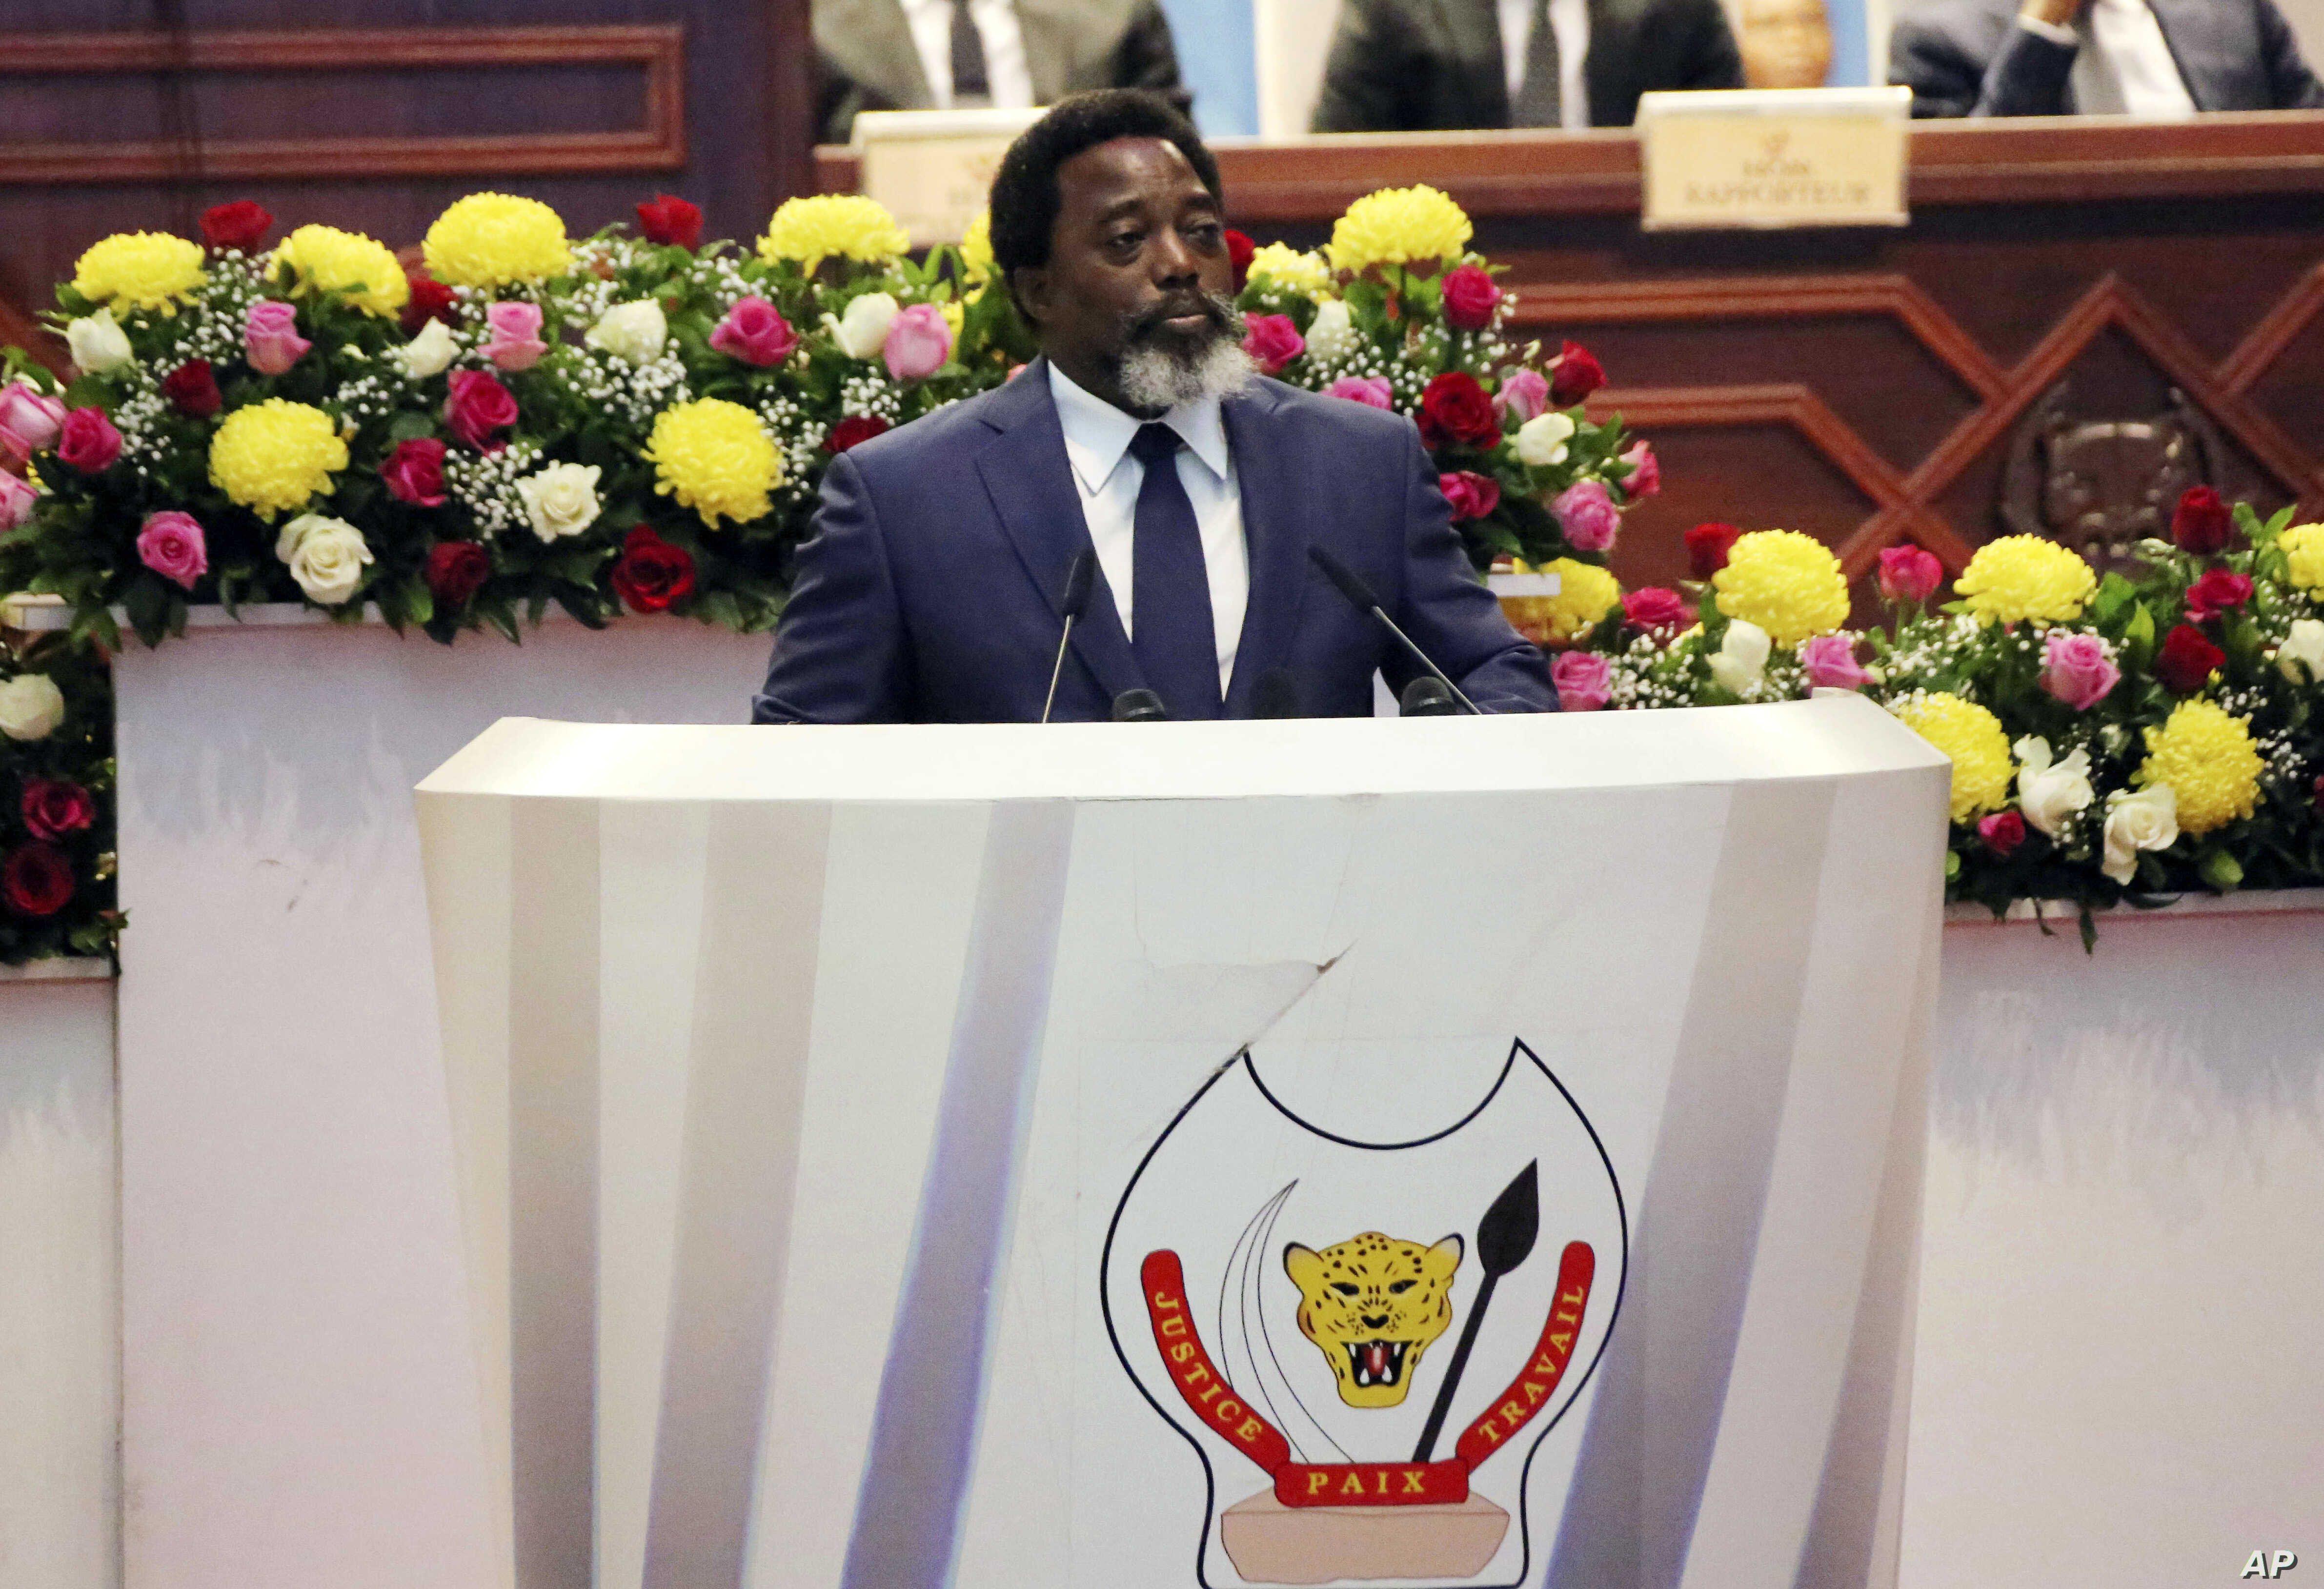 Congo's President Joseph Kabila, seen in this July 19, 2018 file photo, has said he will support former Interior Minister Emmanuel Ramazani Shadary in the upcoming presidential election.